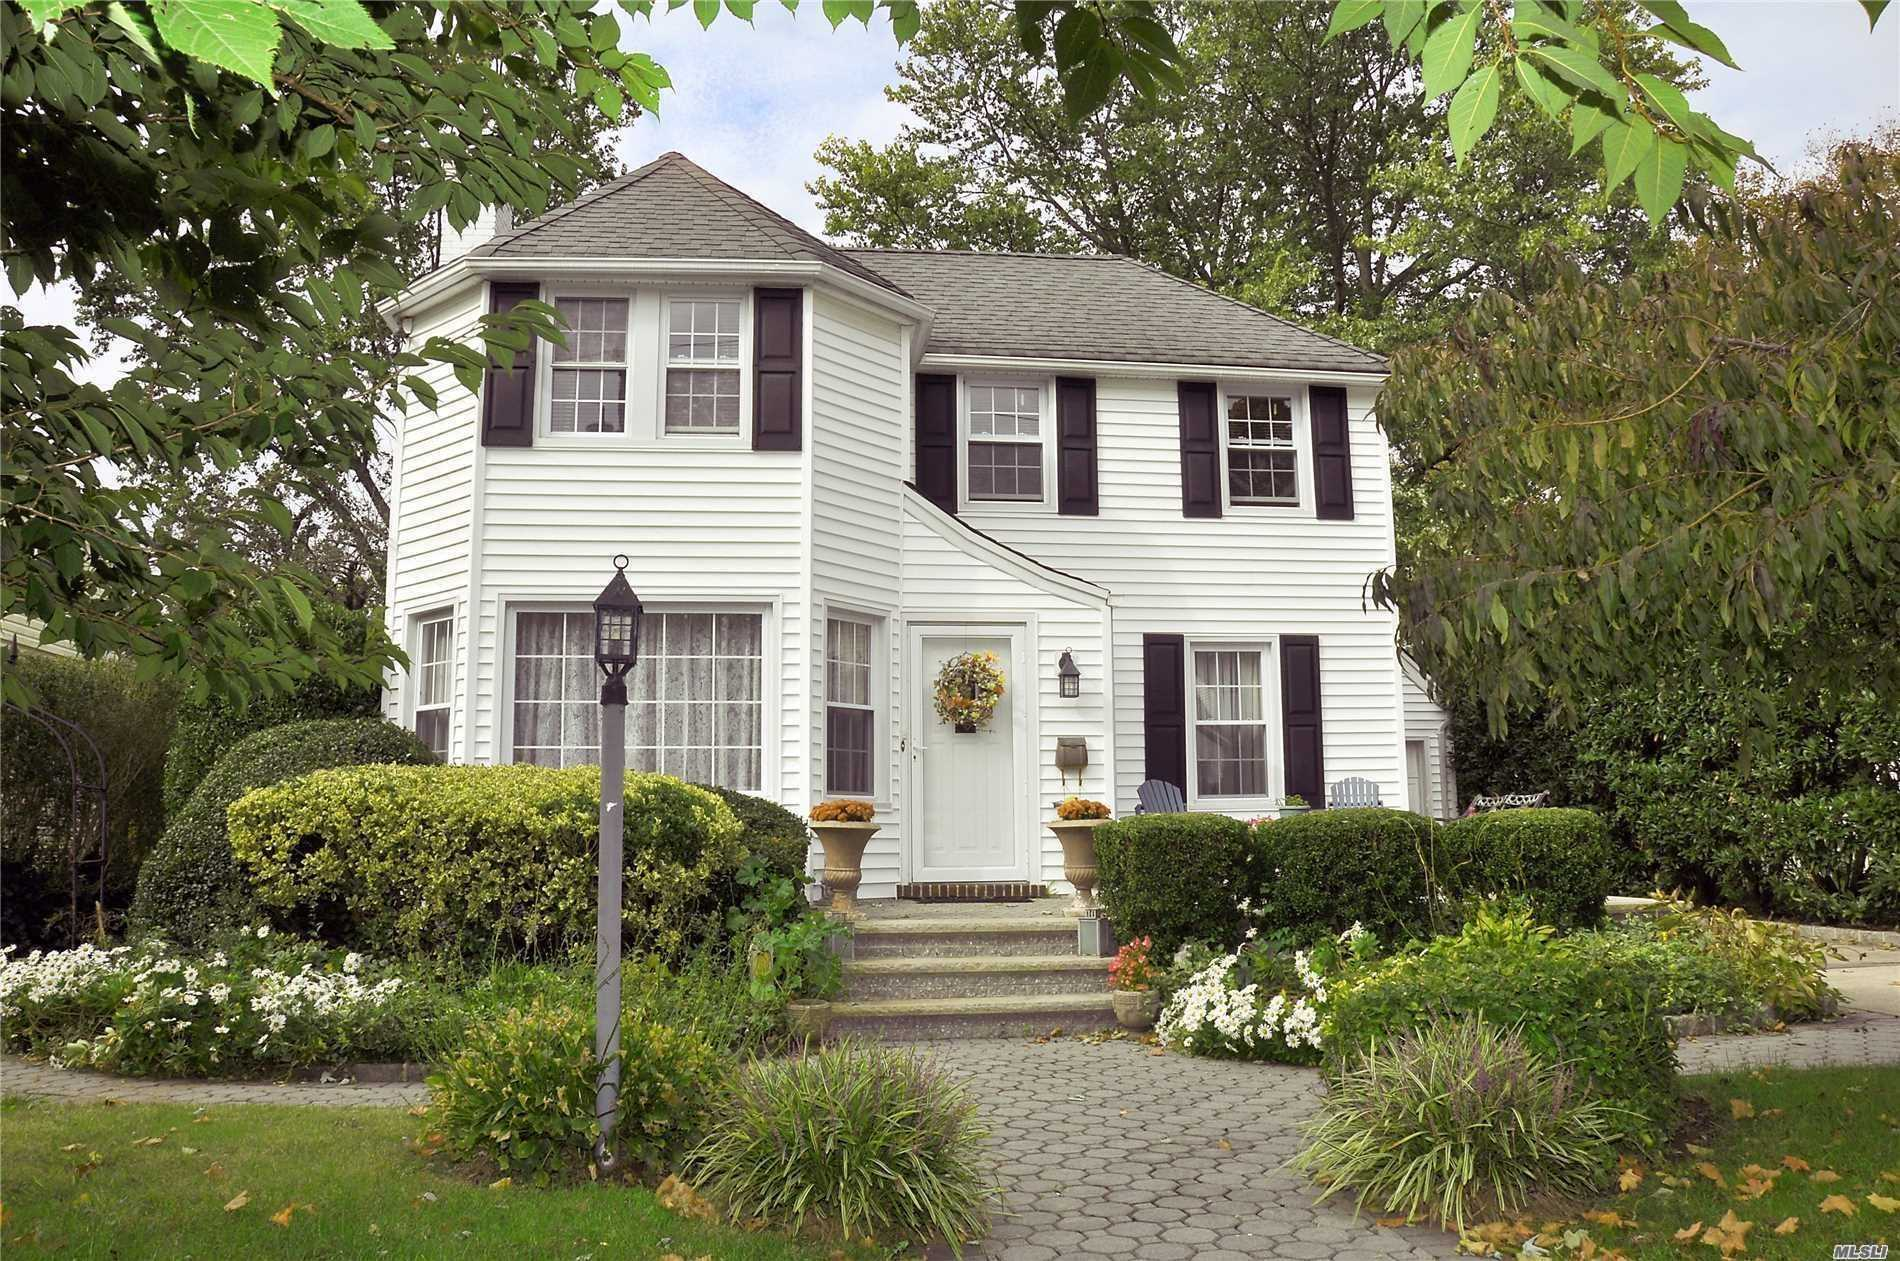 Classic Colonial In Prime Stewart Manor Location! Inviting Entrance Foyer, Oversized Living Room With Fireplace, Banquet Dining Room, Eat-In Kitchen, Cozy Family Room. Large Entertaining Deck. Two Blocks To Shops, Bars, Restaurants. Five Blocks To The L.I.R.R. And The Stewart Manor Country Club.